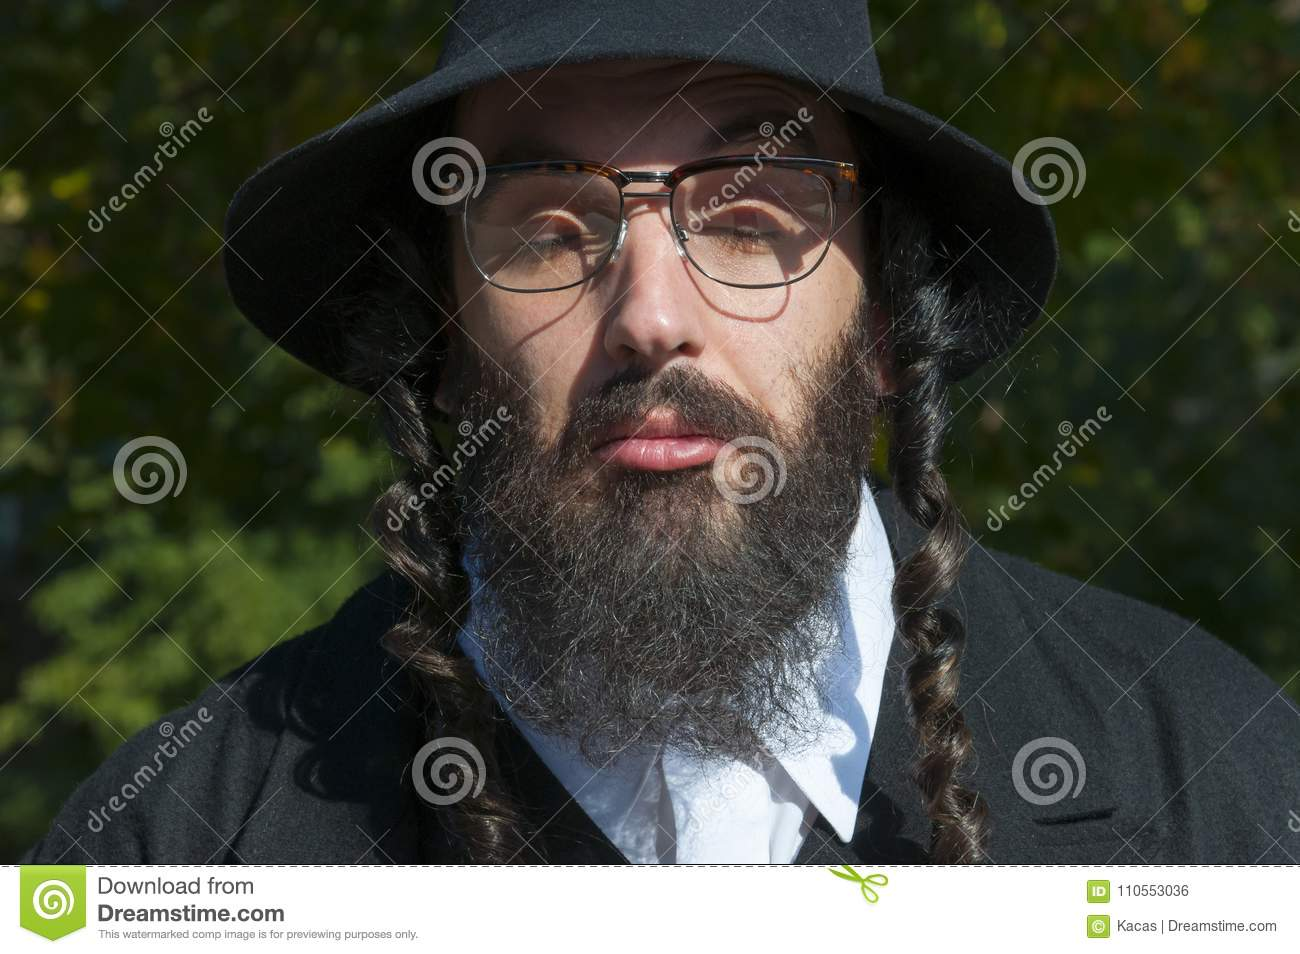 b6b657ad566c Outdoor sunny portrait of bewildered closed eyes young traditional orthodox  Jewish man with black beard and hat wearing eyeglasses